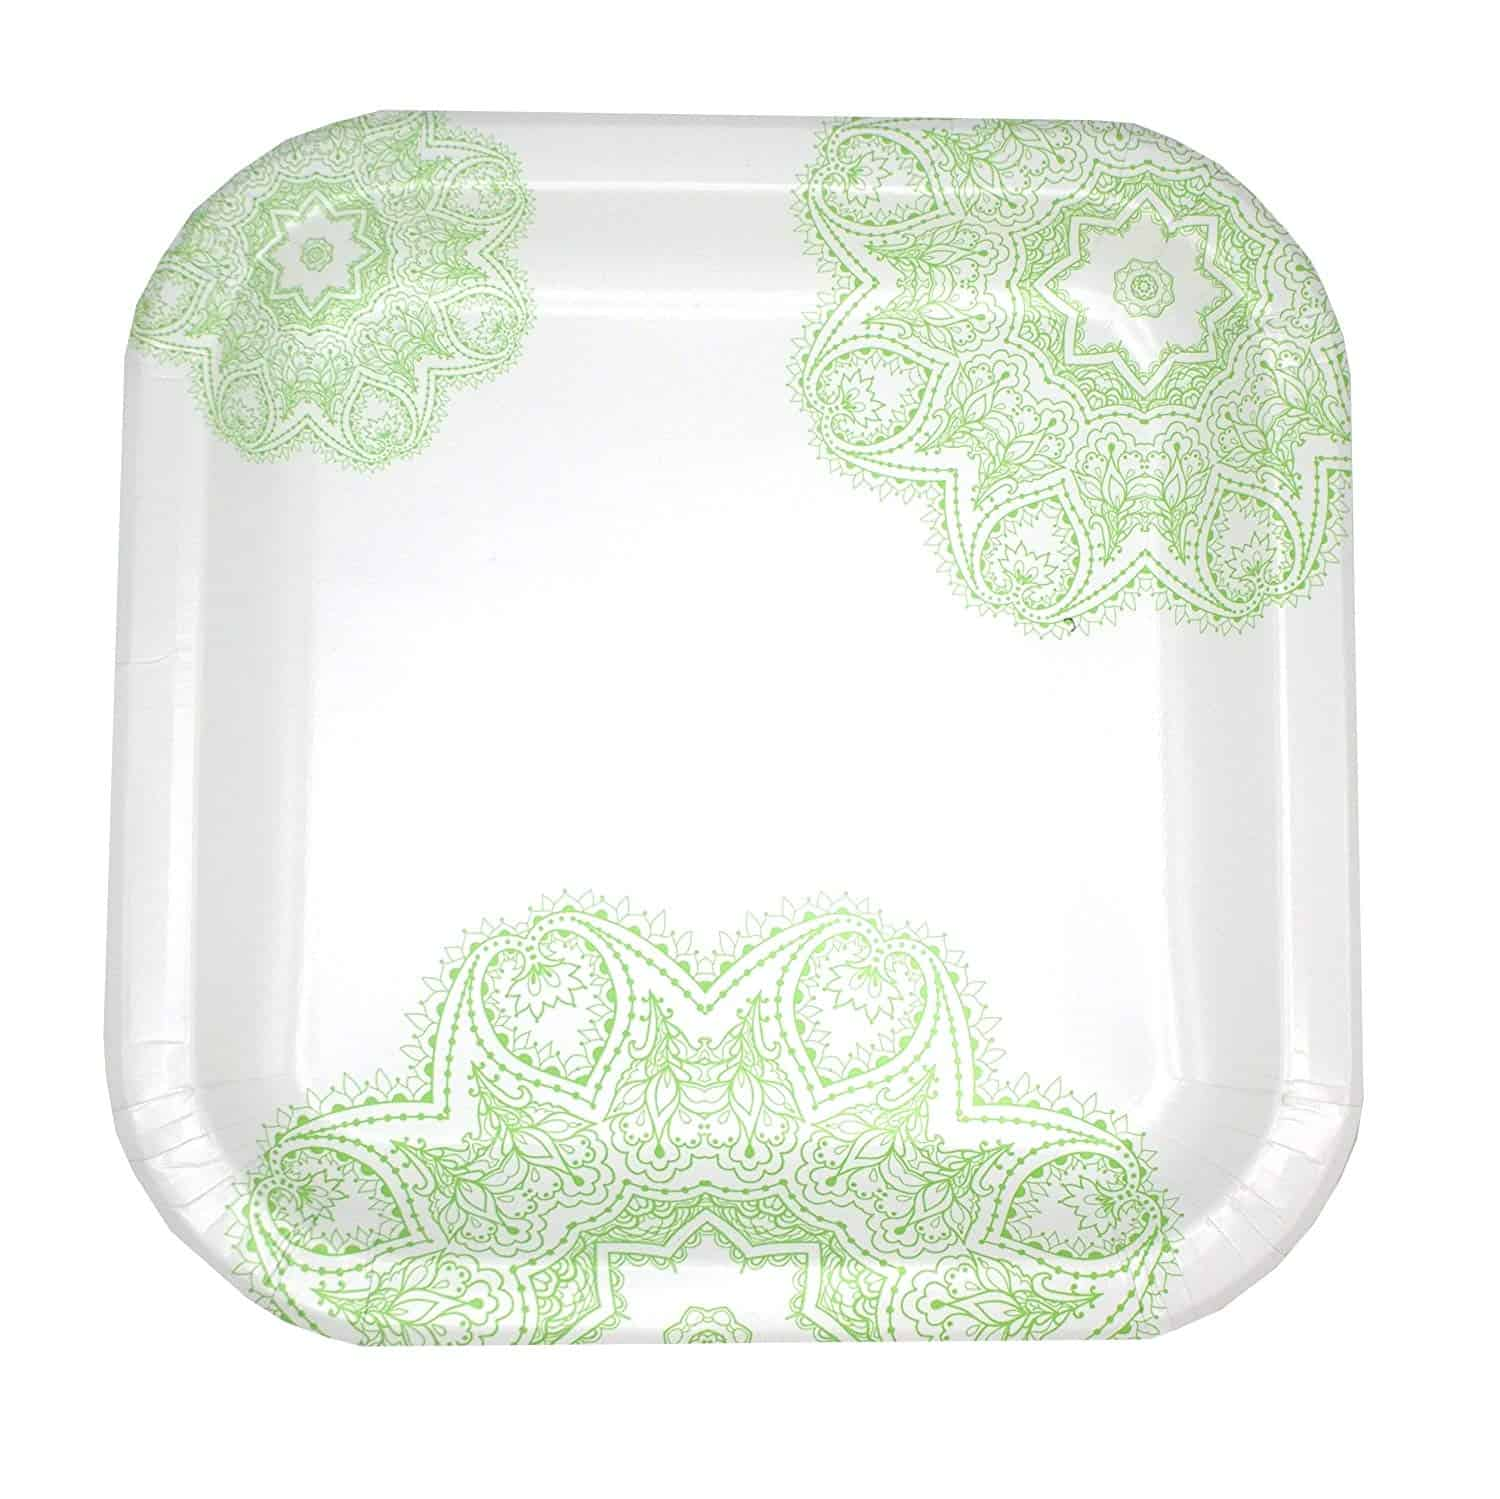 This package of coated plates with flower design is a beautiful option for wedding showers, birthdays, tailgating, kid or adult celebrations, picnics, and many other occasions